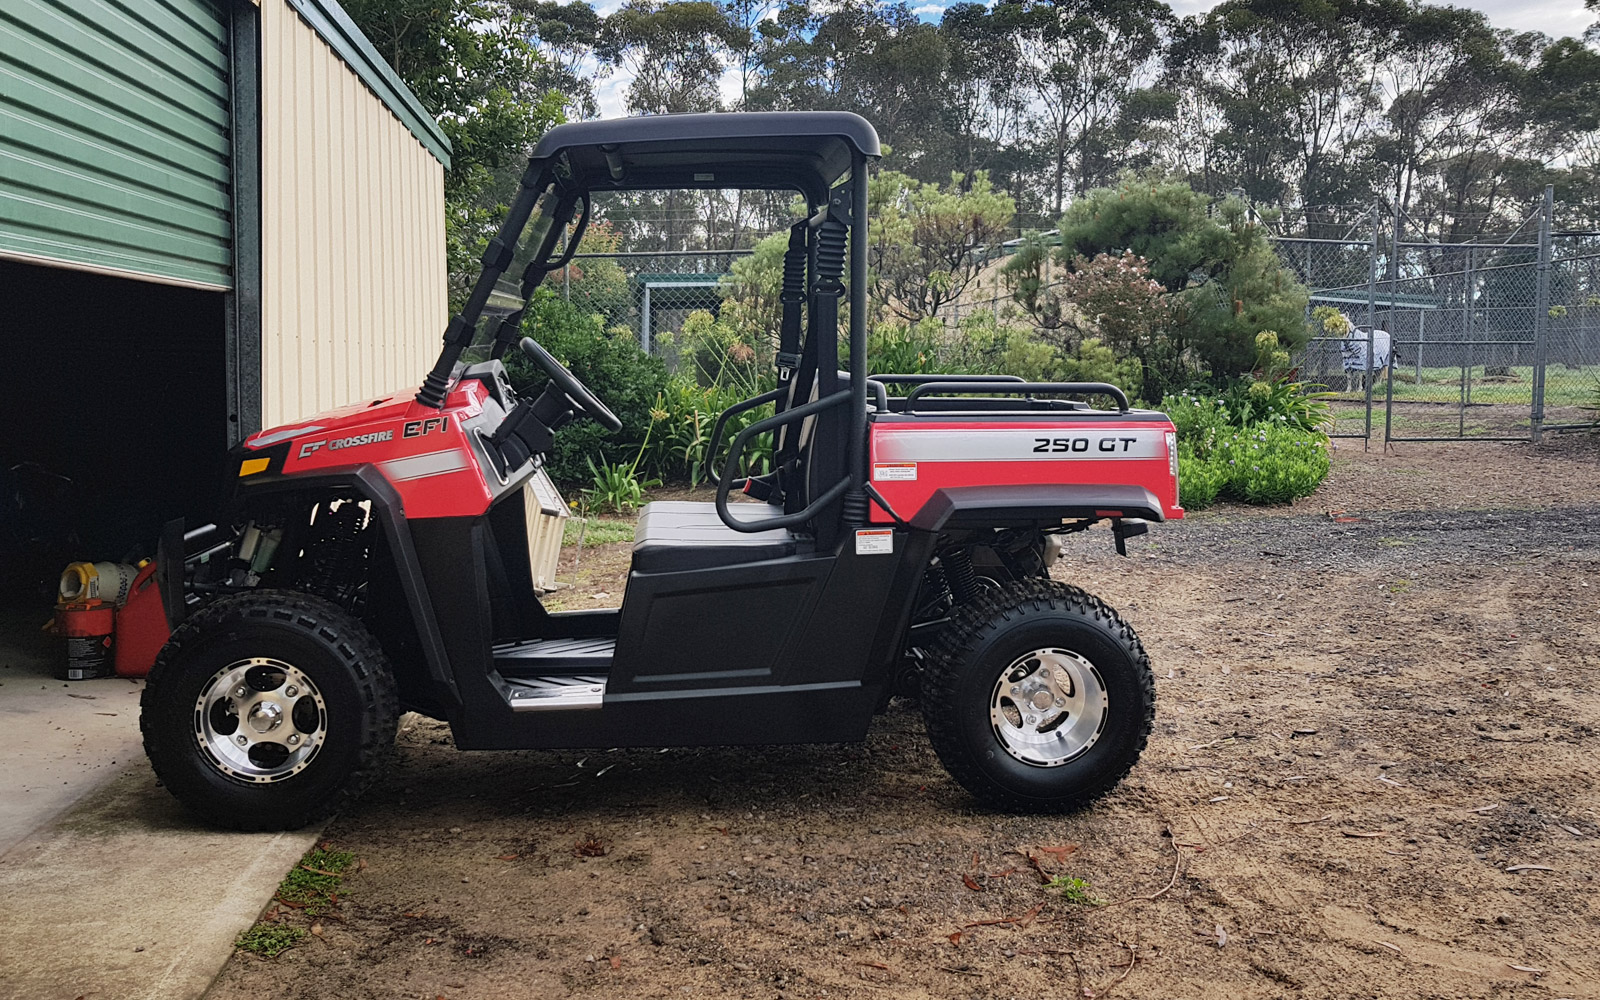 crossfire-250gt-utility-utv-side-tray-atv